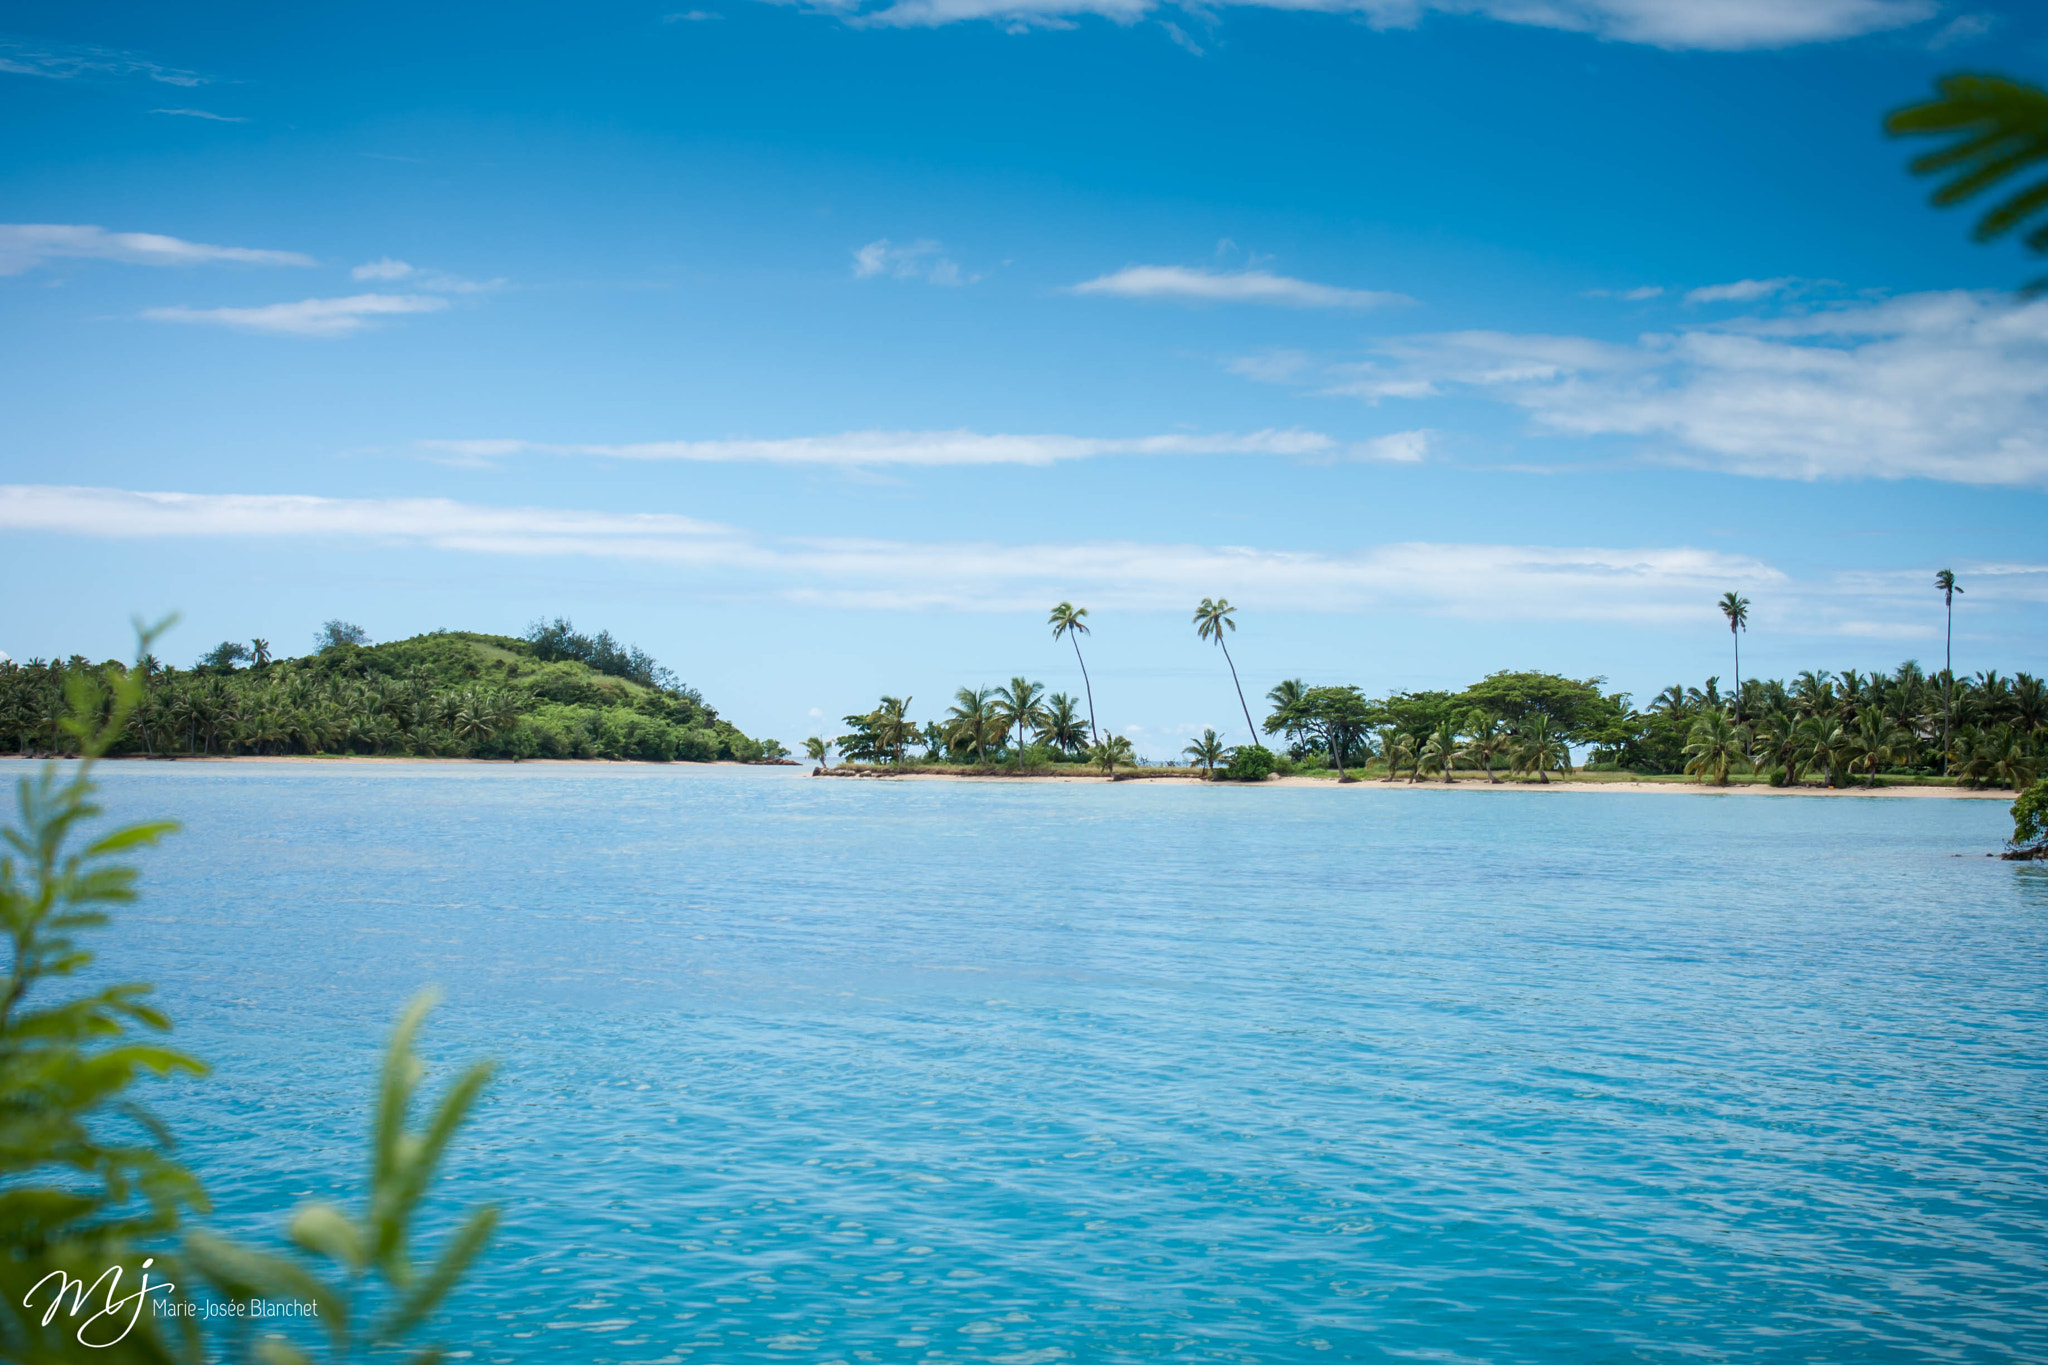 Fiji Government Cancels Project Approval of Chinese Resort Developer